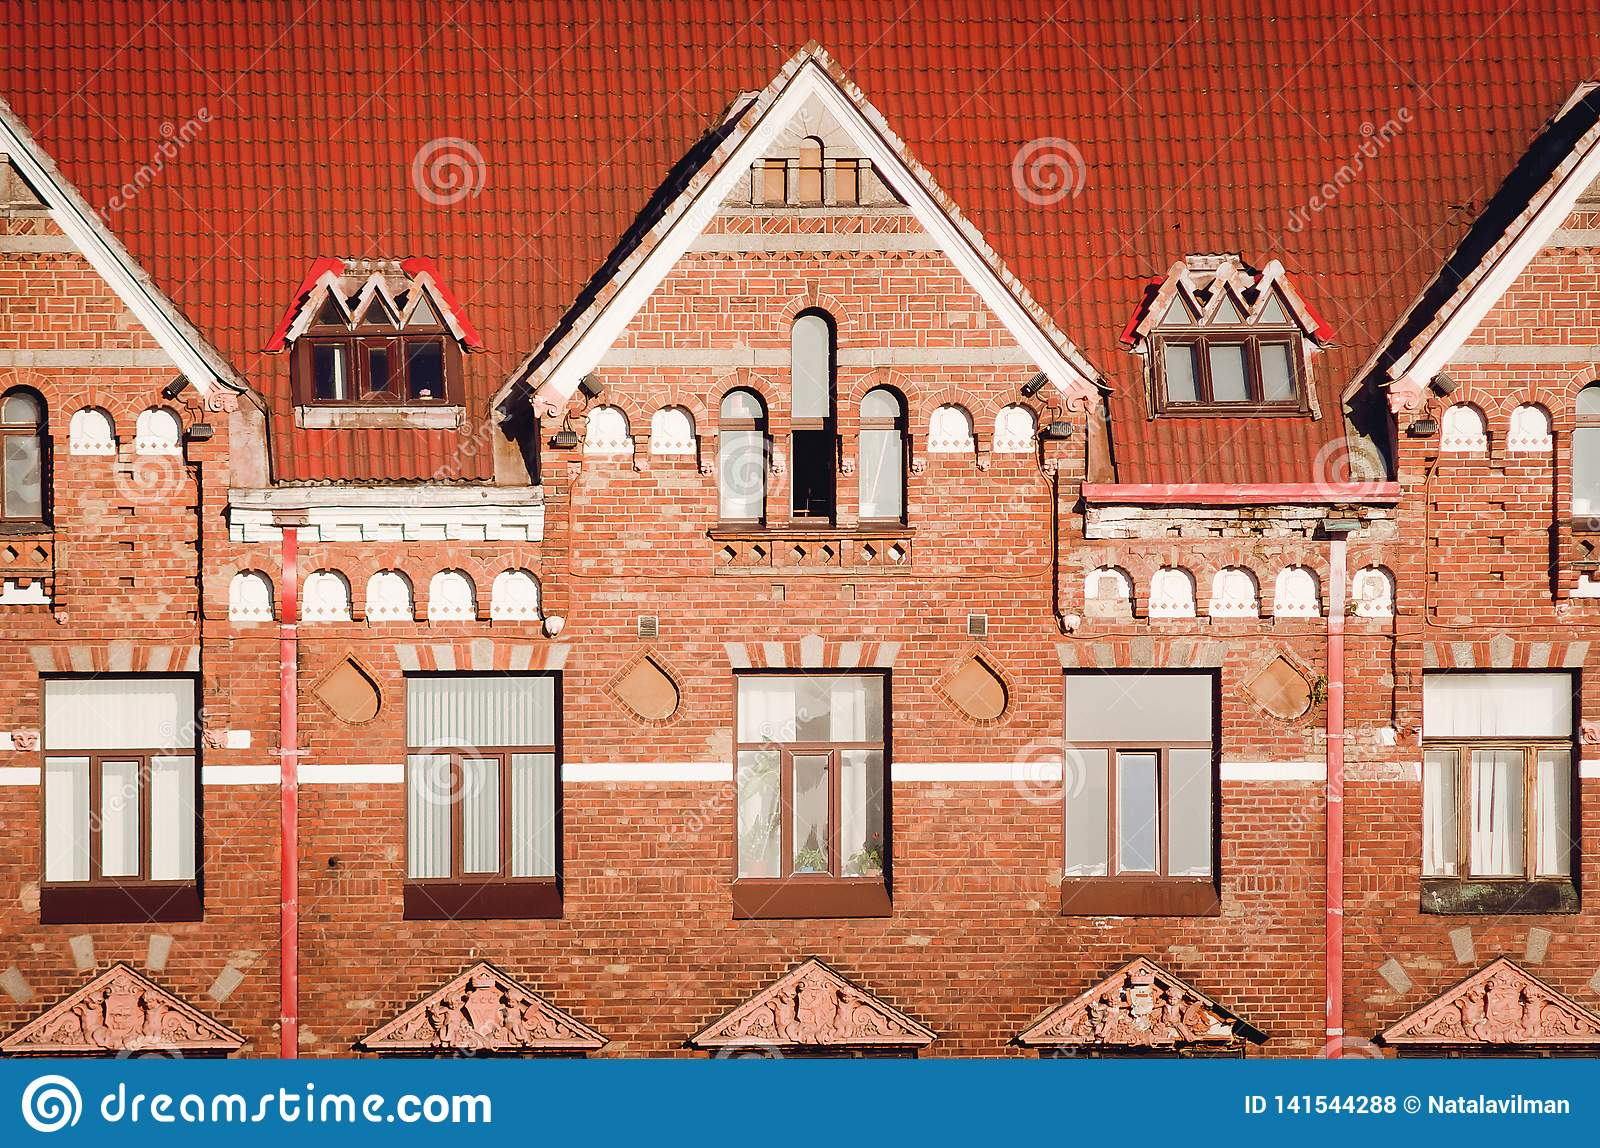 Beautiful ancient architecture of the city of Vyborg. Fragment of an old red brick building